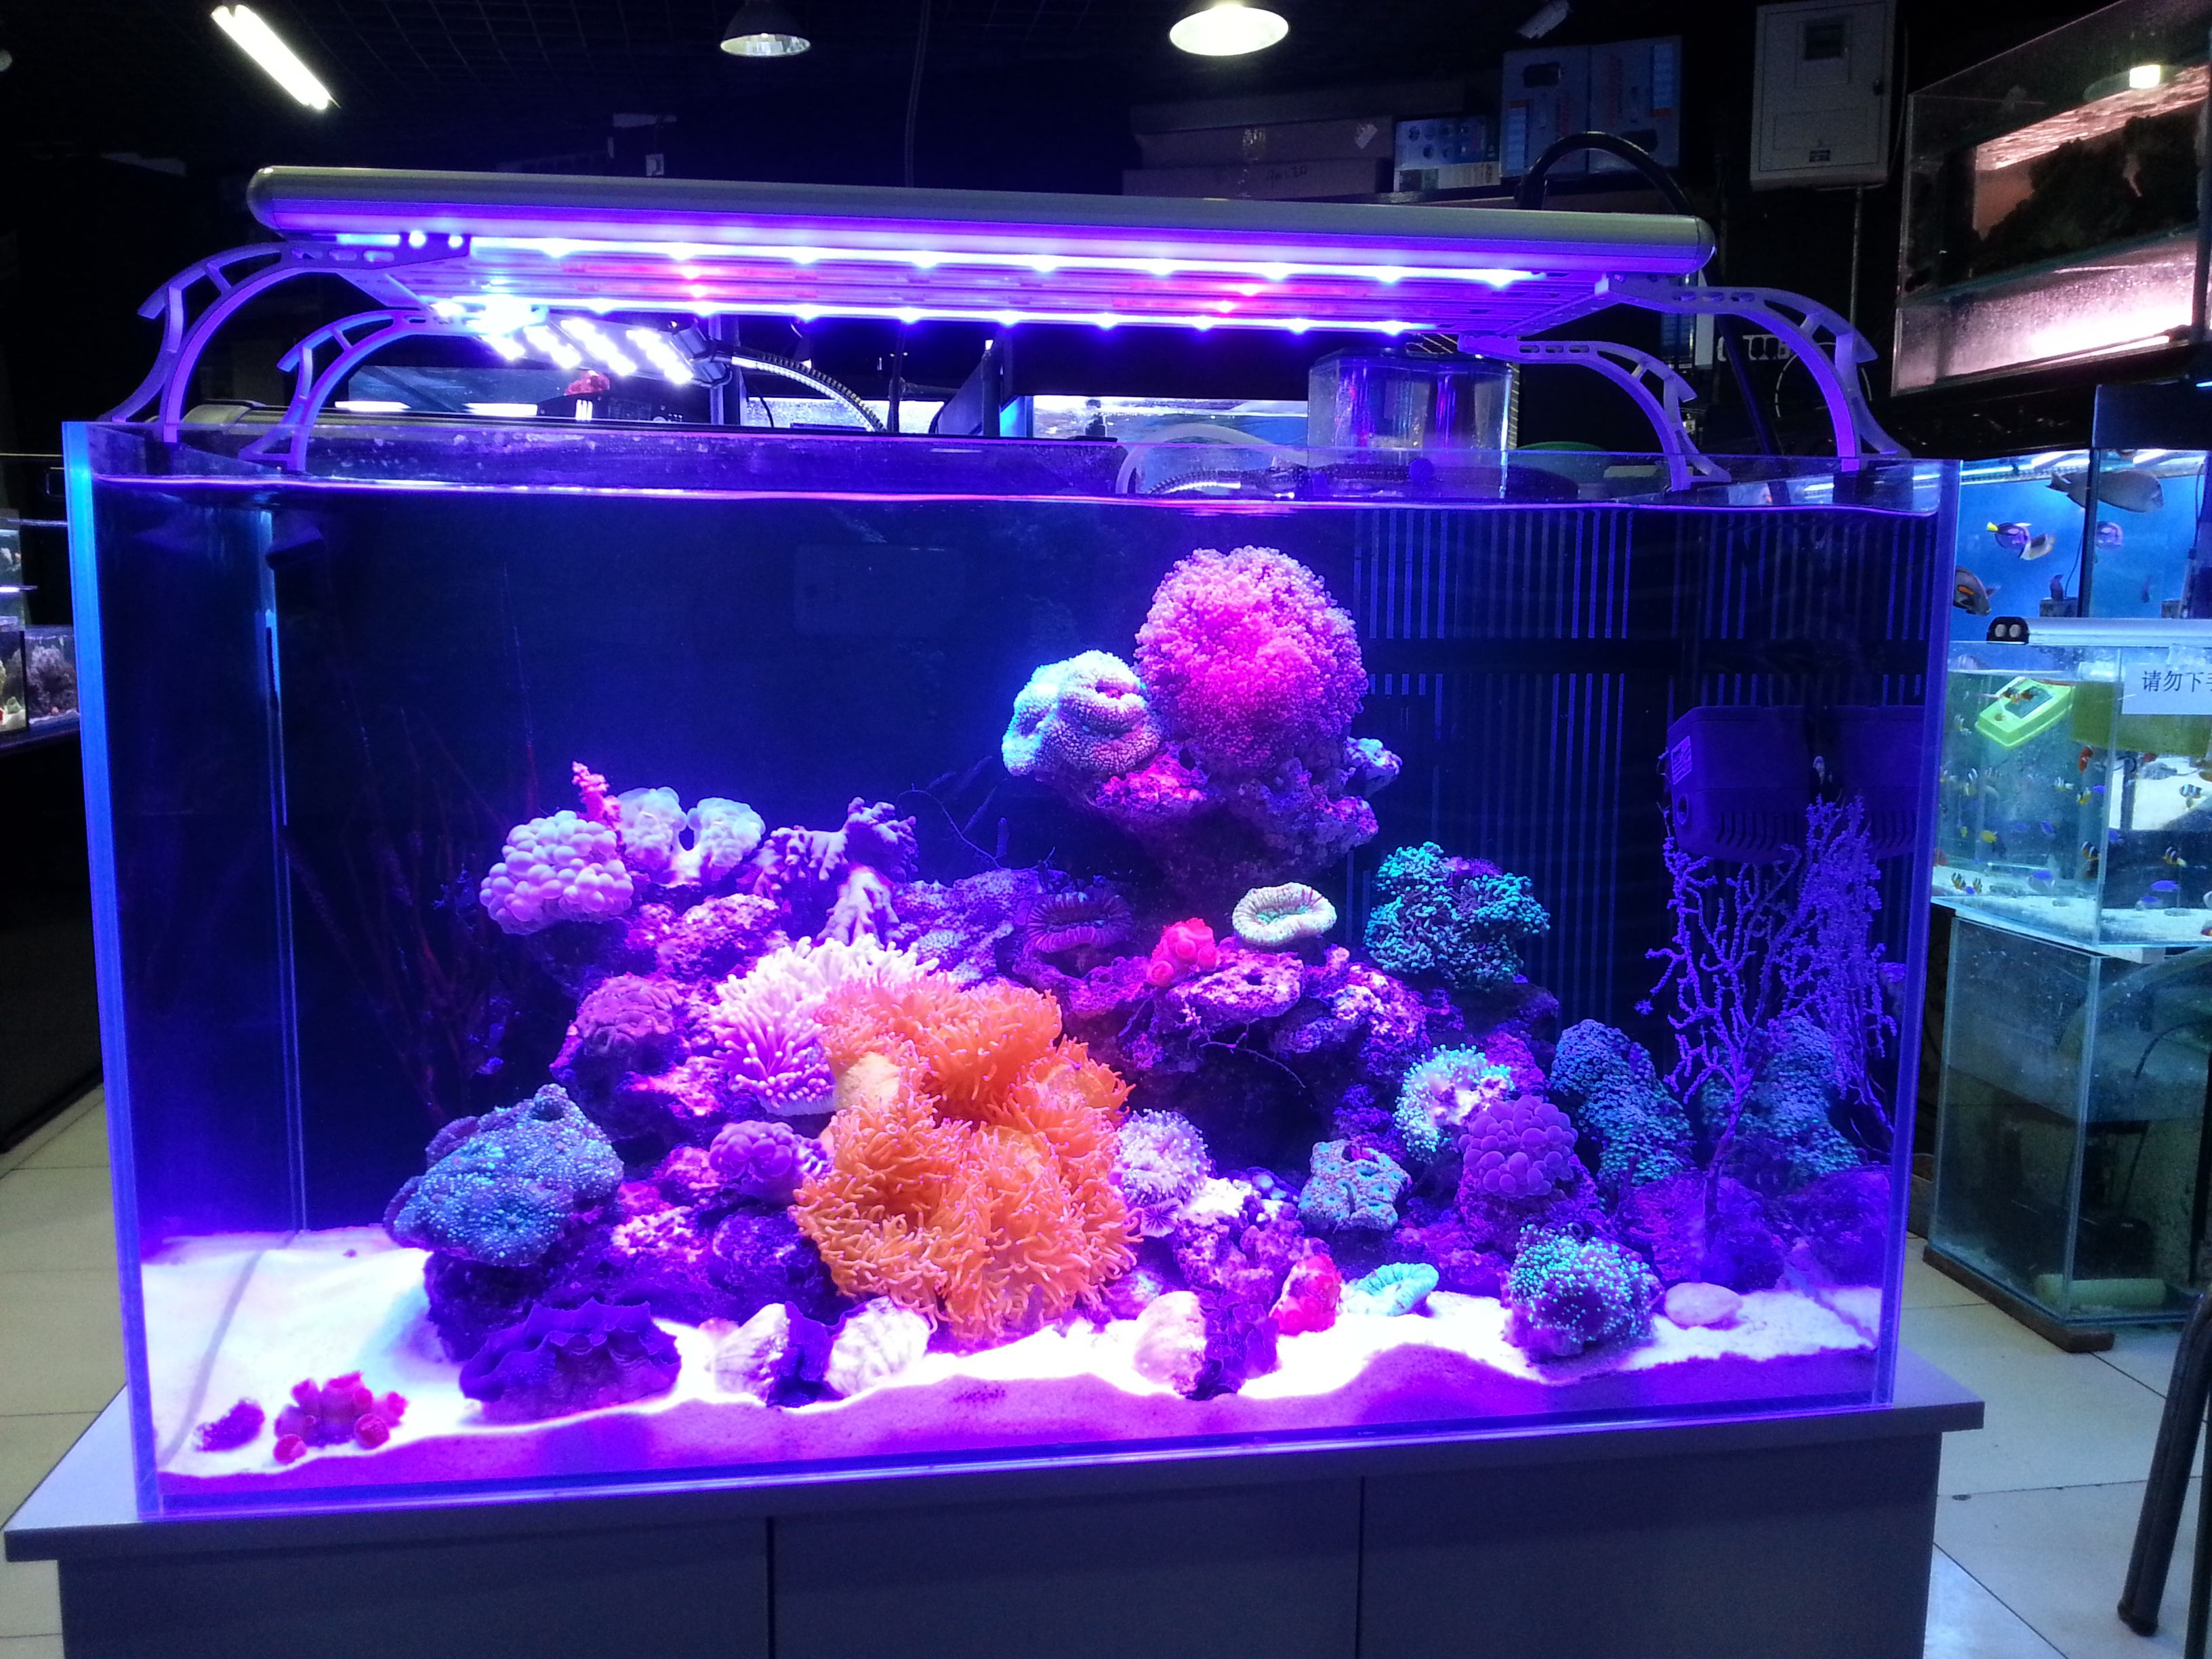 A Great Saltwater Aquarium Lit With Coolook Led Light Thanks To Our